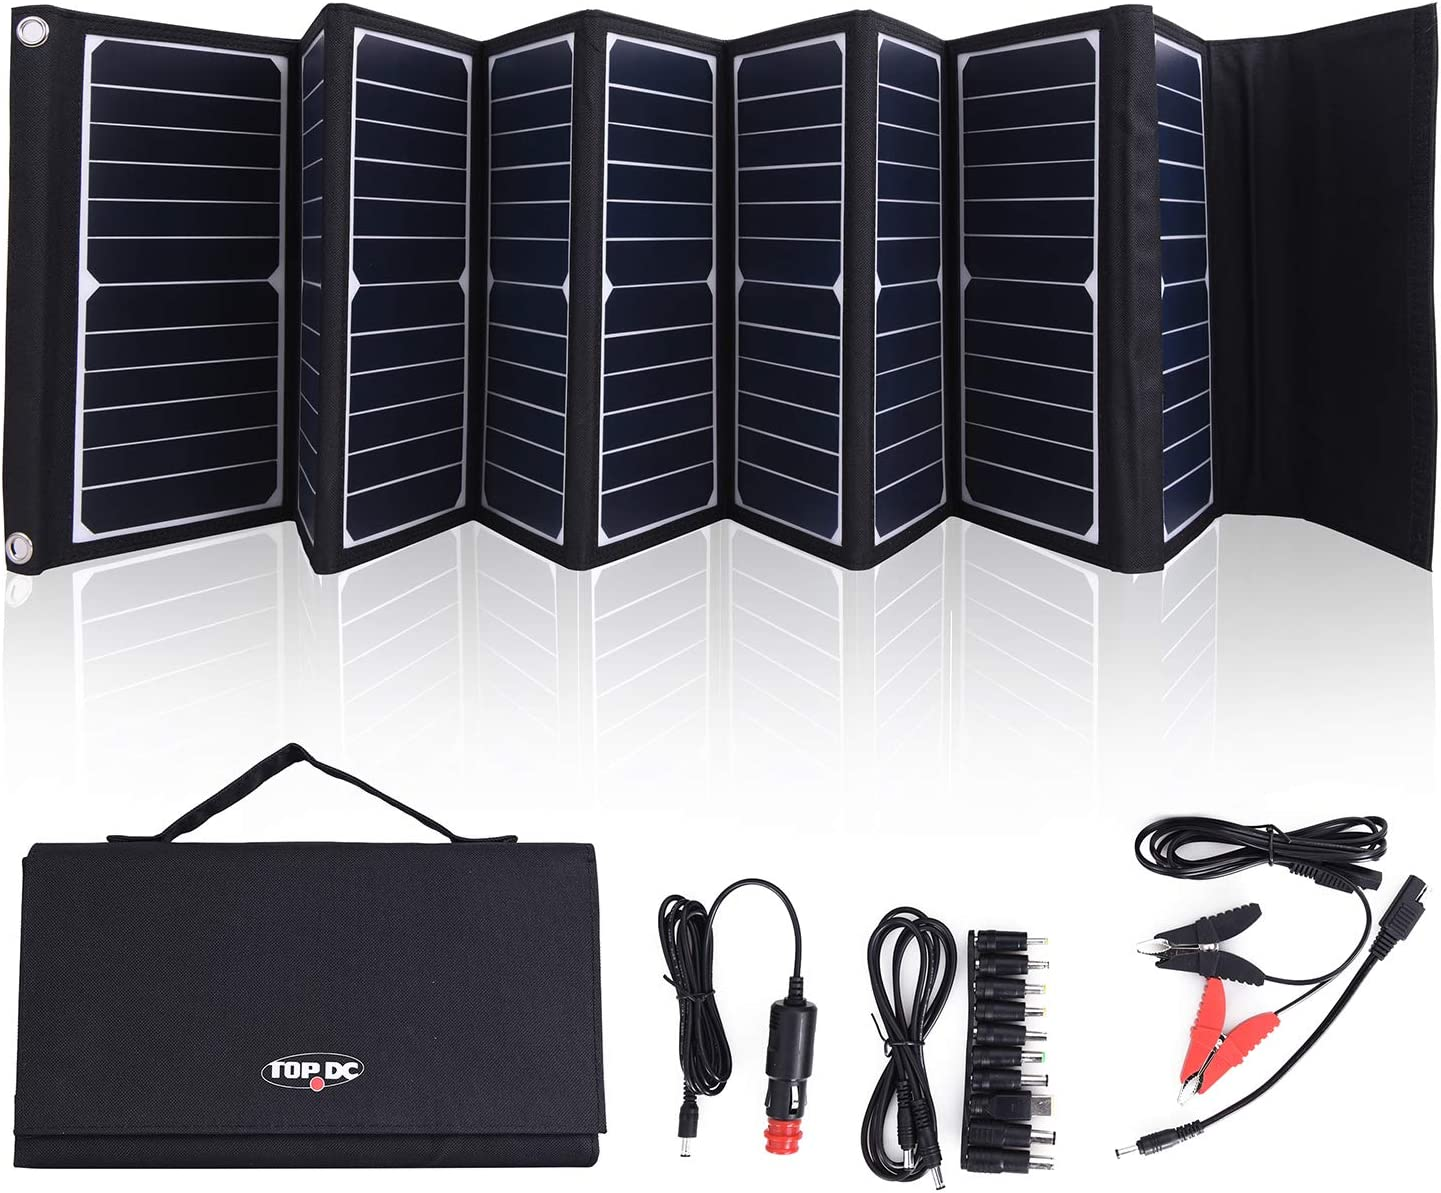 TOPDC 60W High Efficiency 22 Solar Charger with 5V USB 18V DC Dual Output, with Battery Clamps and Car Charger for Laptop Tablet GPS Cellphone,Car, Portable Solar Power Charger for Camping Outdoors